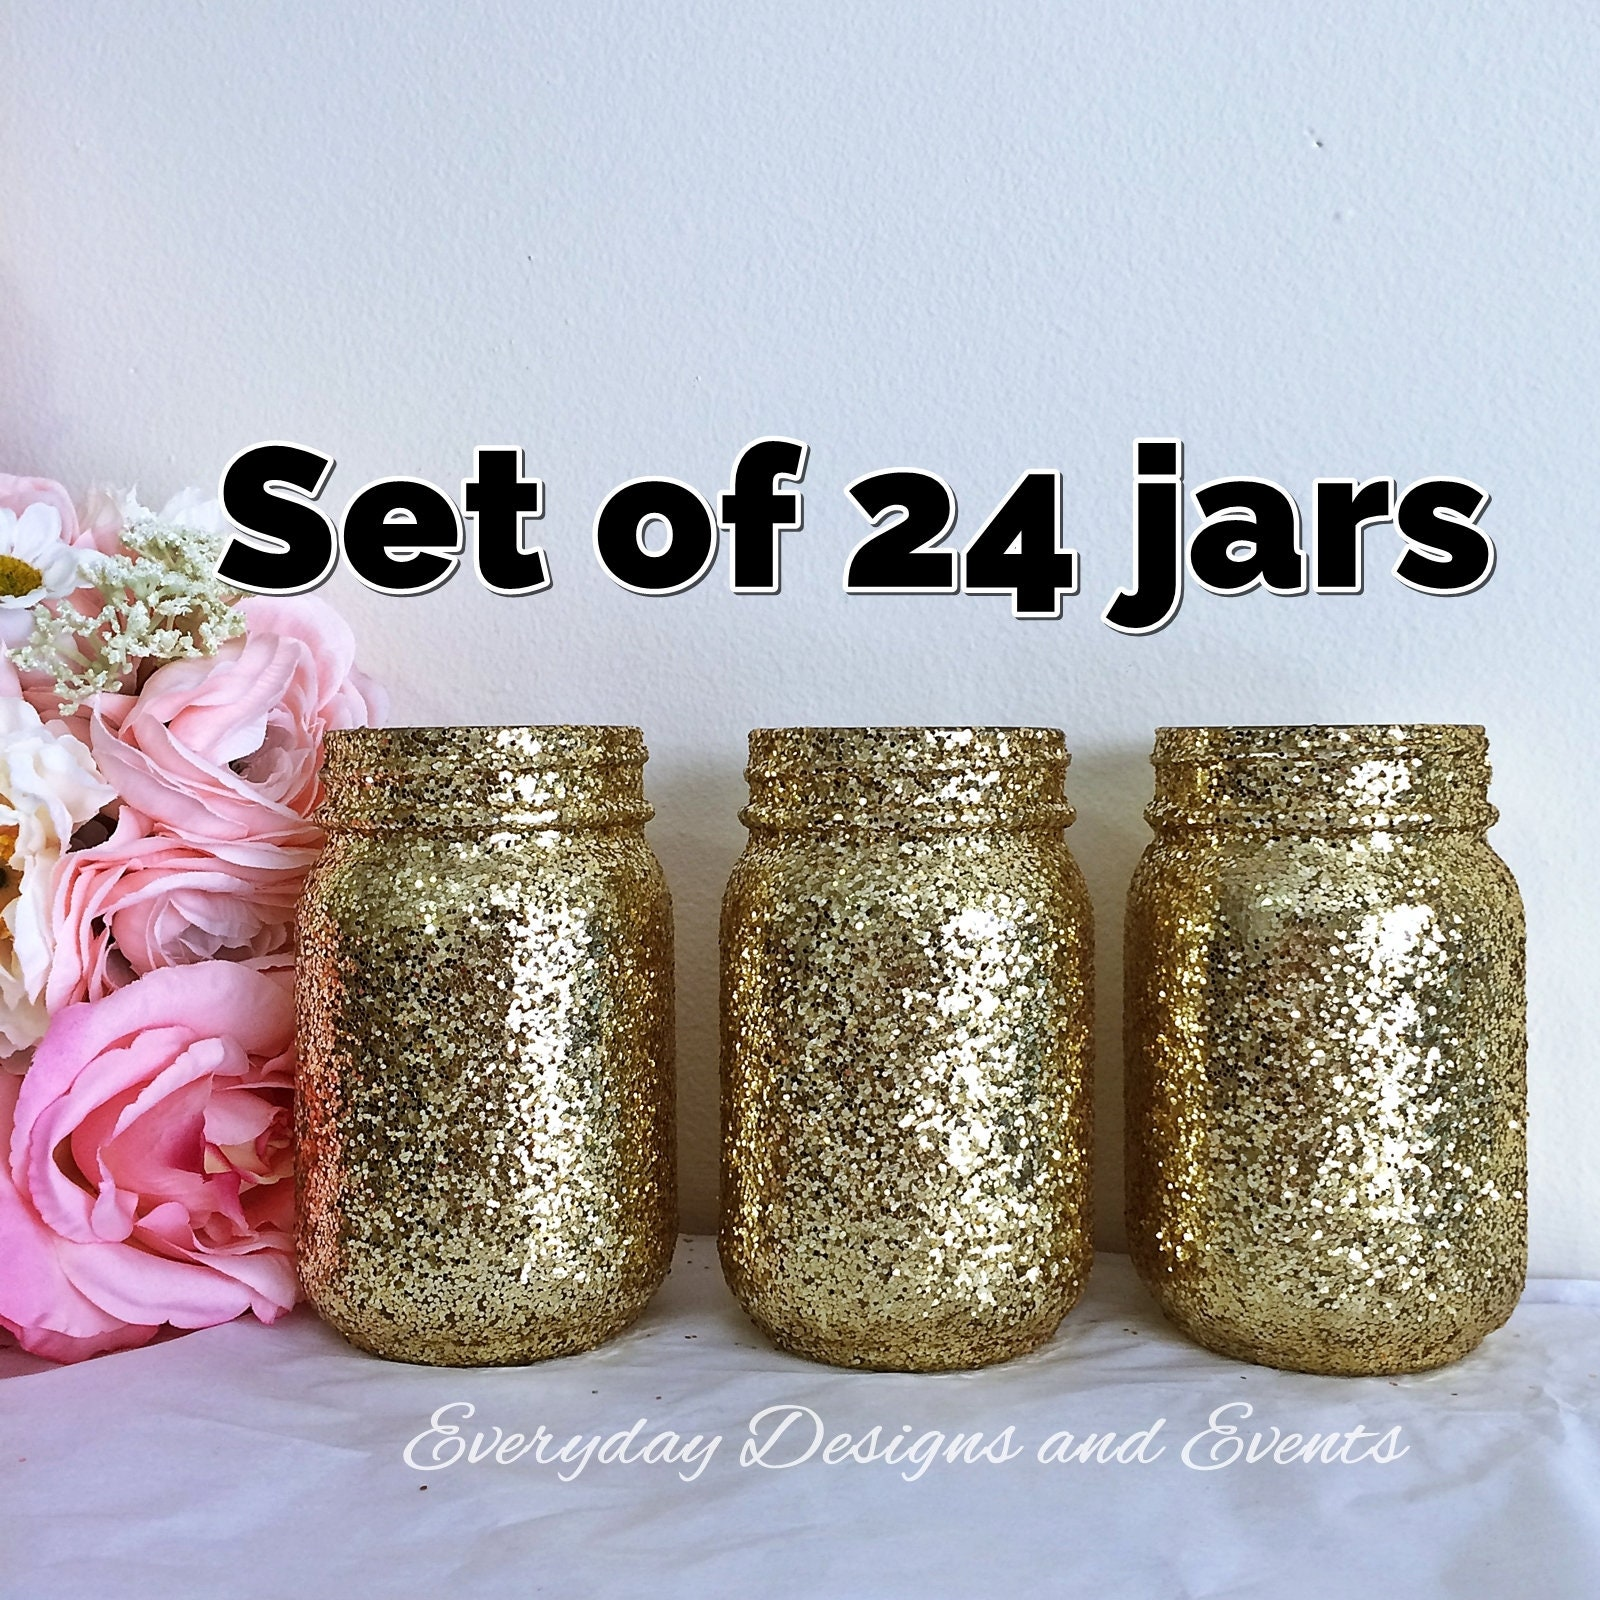 Bulk Mason Jars Gold Mason Jars Centerpieces Baby Shower Decorations Baby Shower Centerpiece Wedding Decor Center Pieces For Table